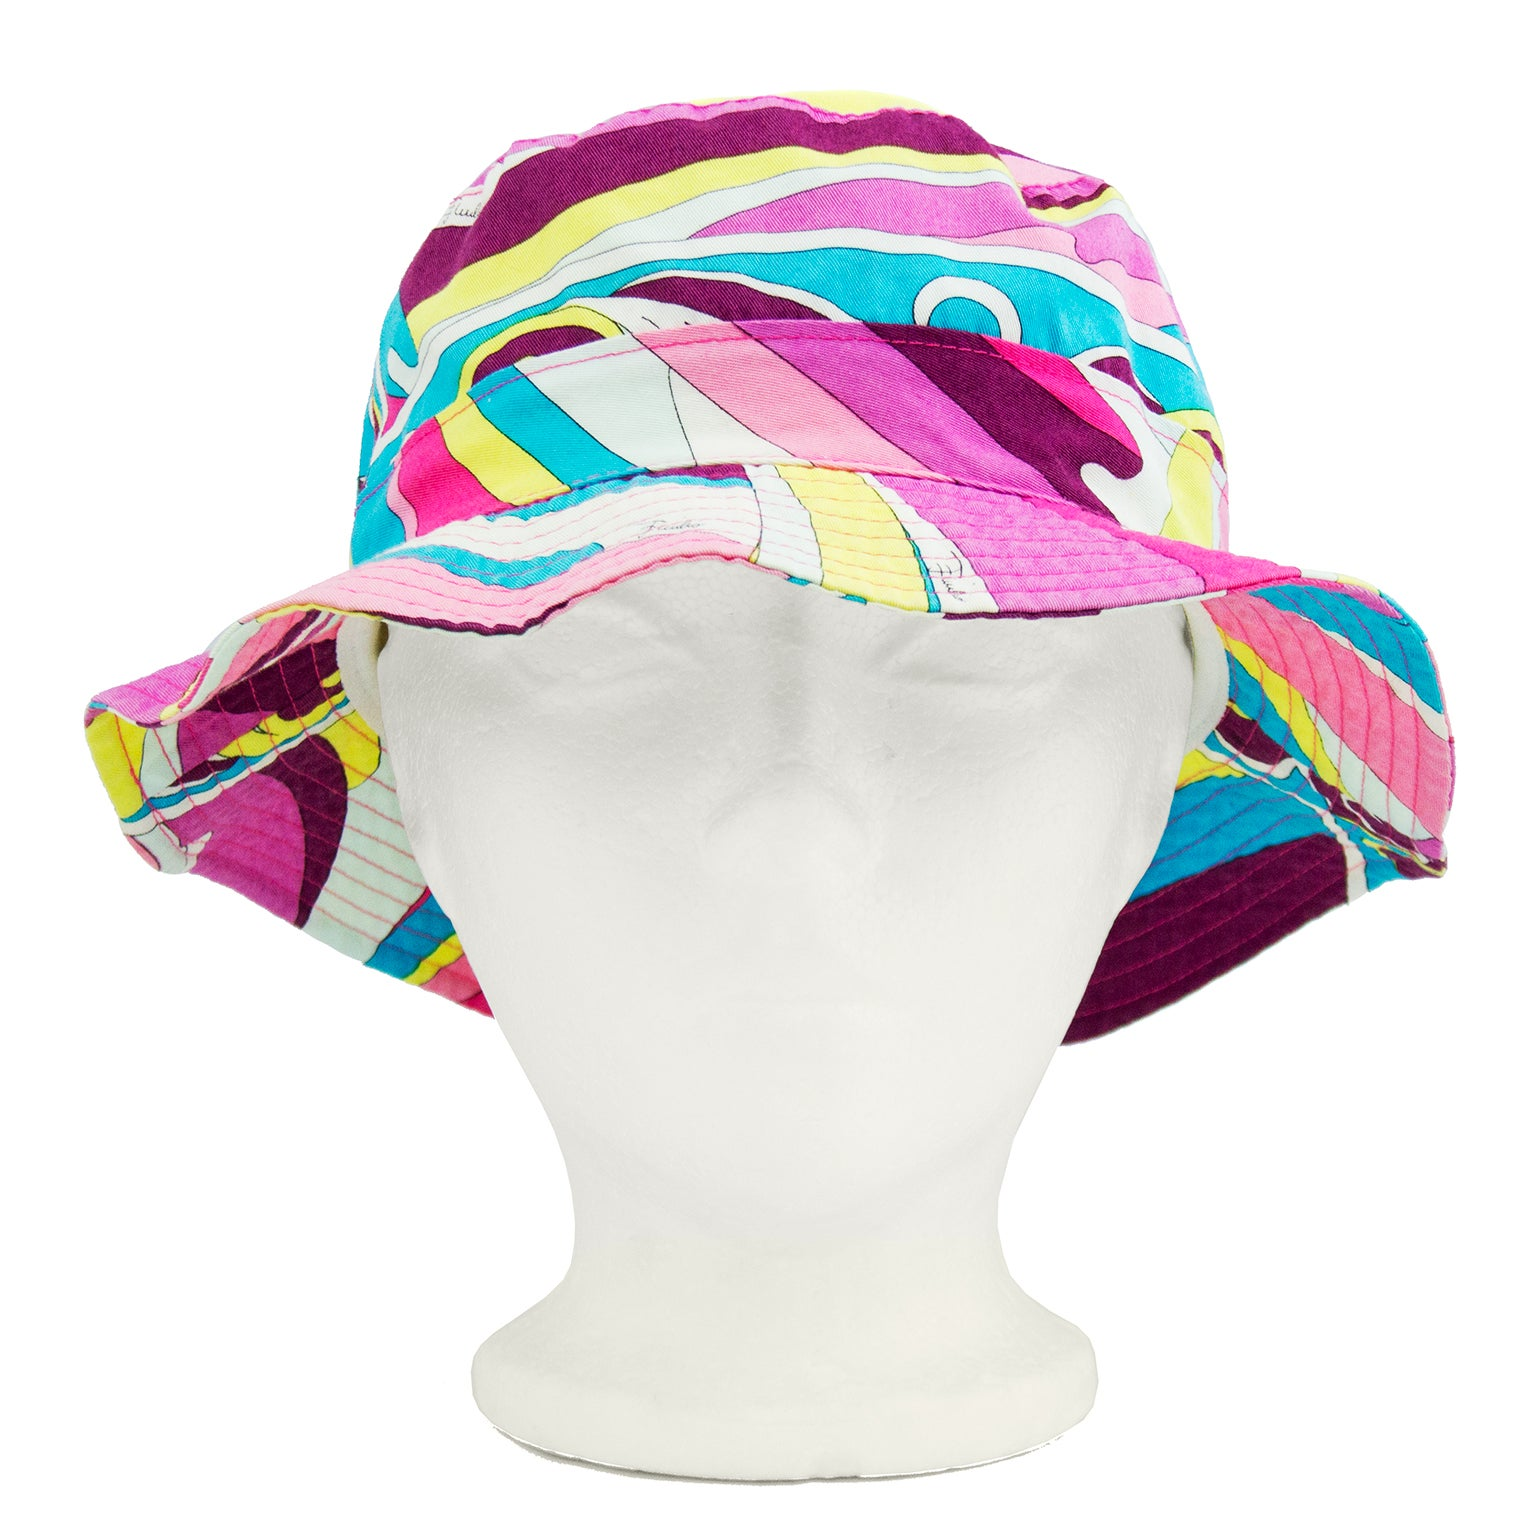 21ae55a1549 Early 2000s Emilio Pucci Pink and Blue Bucket Hat For Sale at 1stdibs